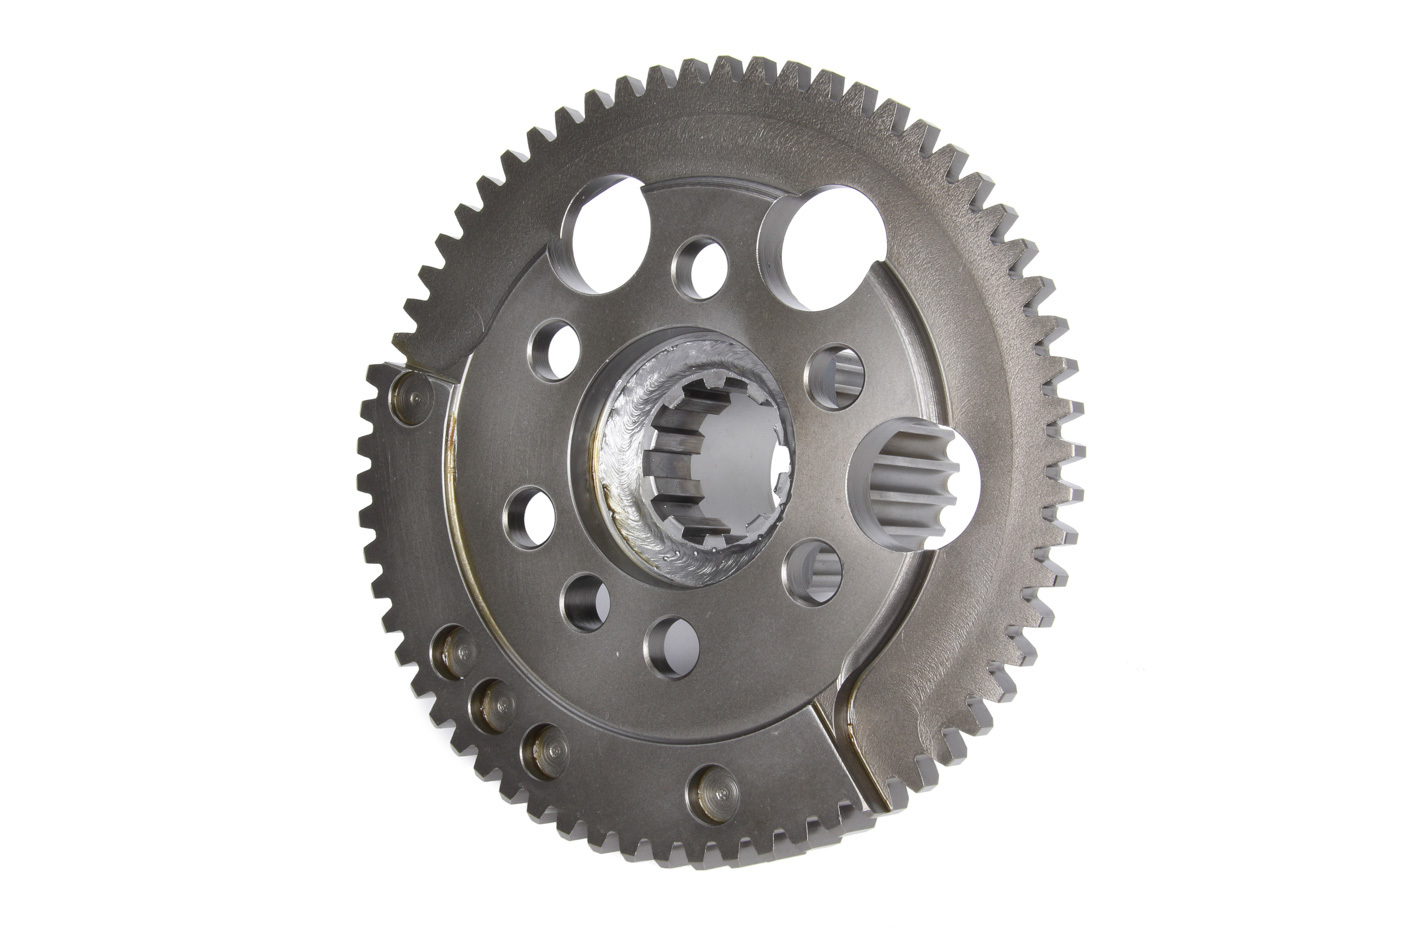 Winters 63844-10H Flywheel, 64 Tooth, External Balance, Crank Coupler, Steel, Natural, Small Block Chevy, Each